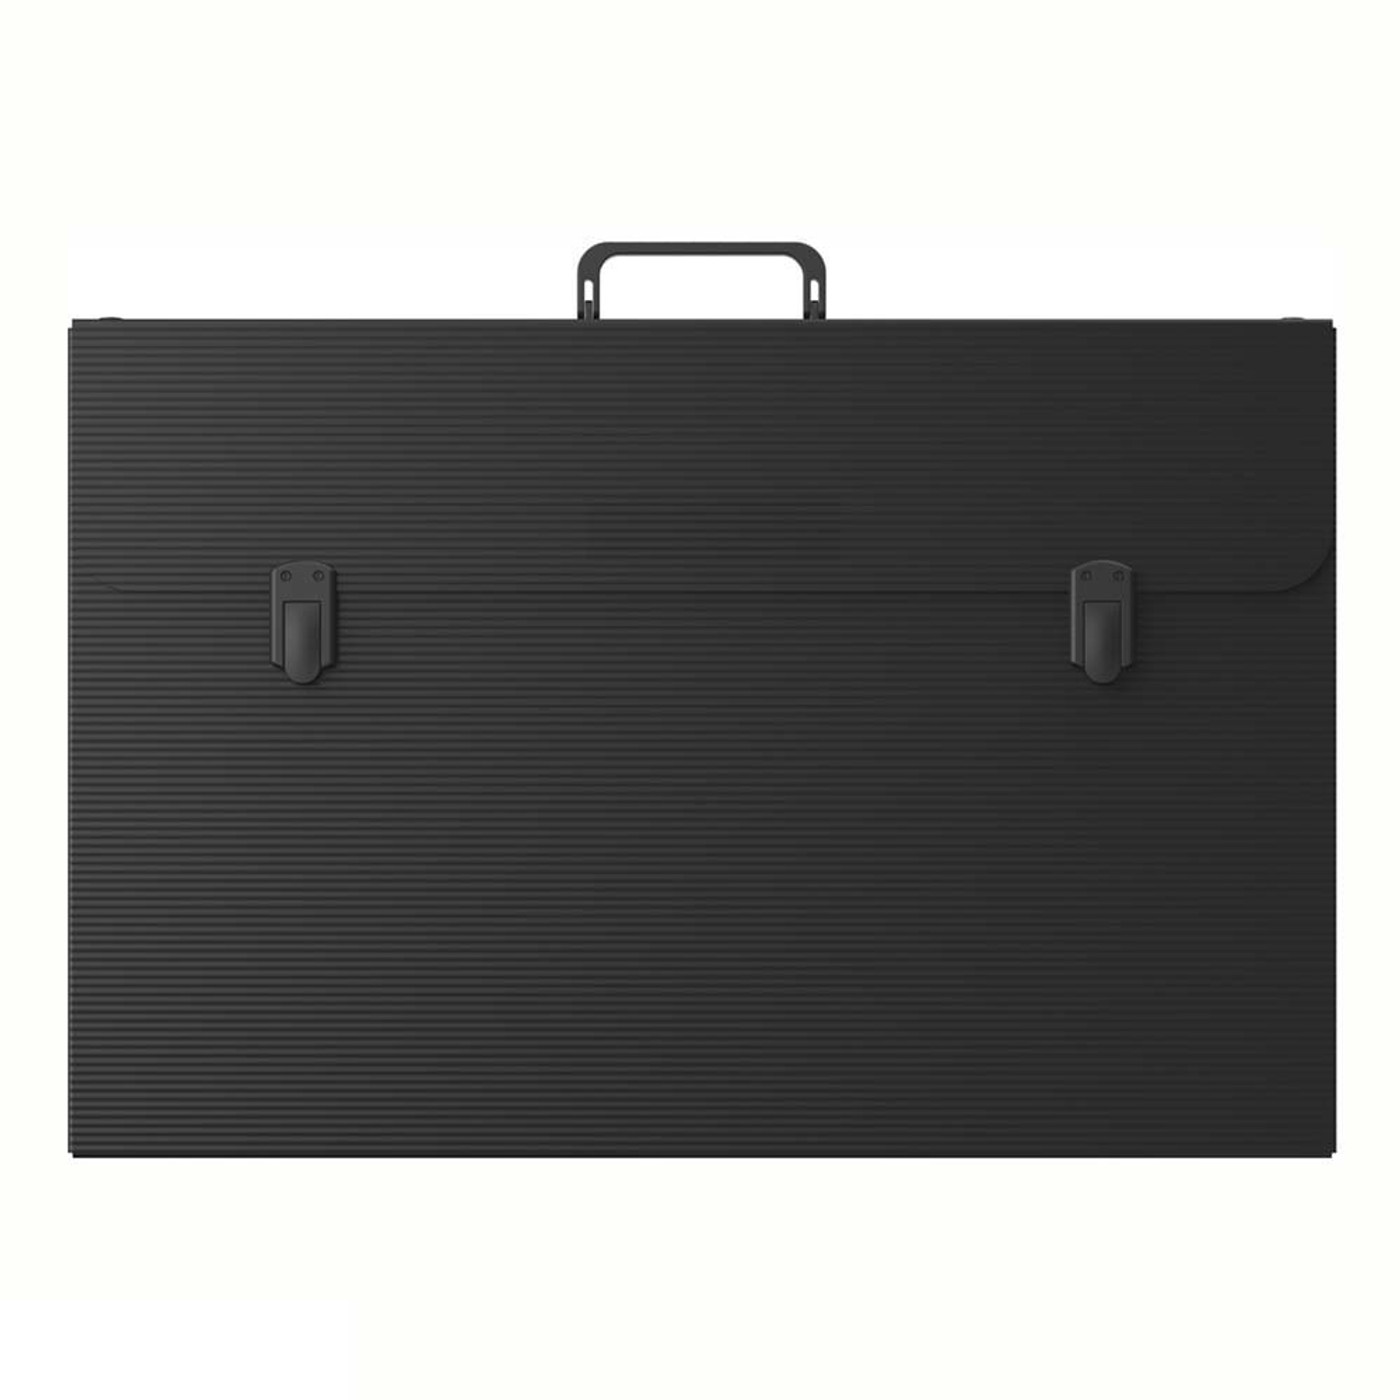 1573 Carrying Case for #1570 & #1571 Sub Boards